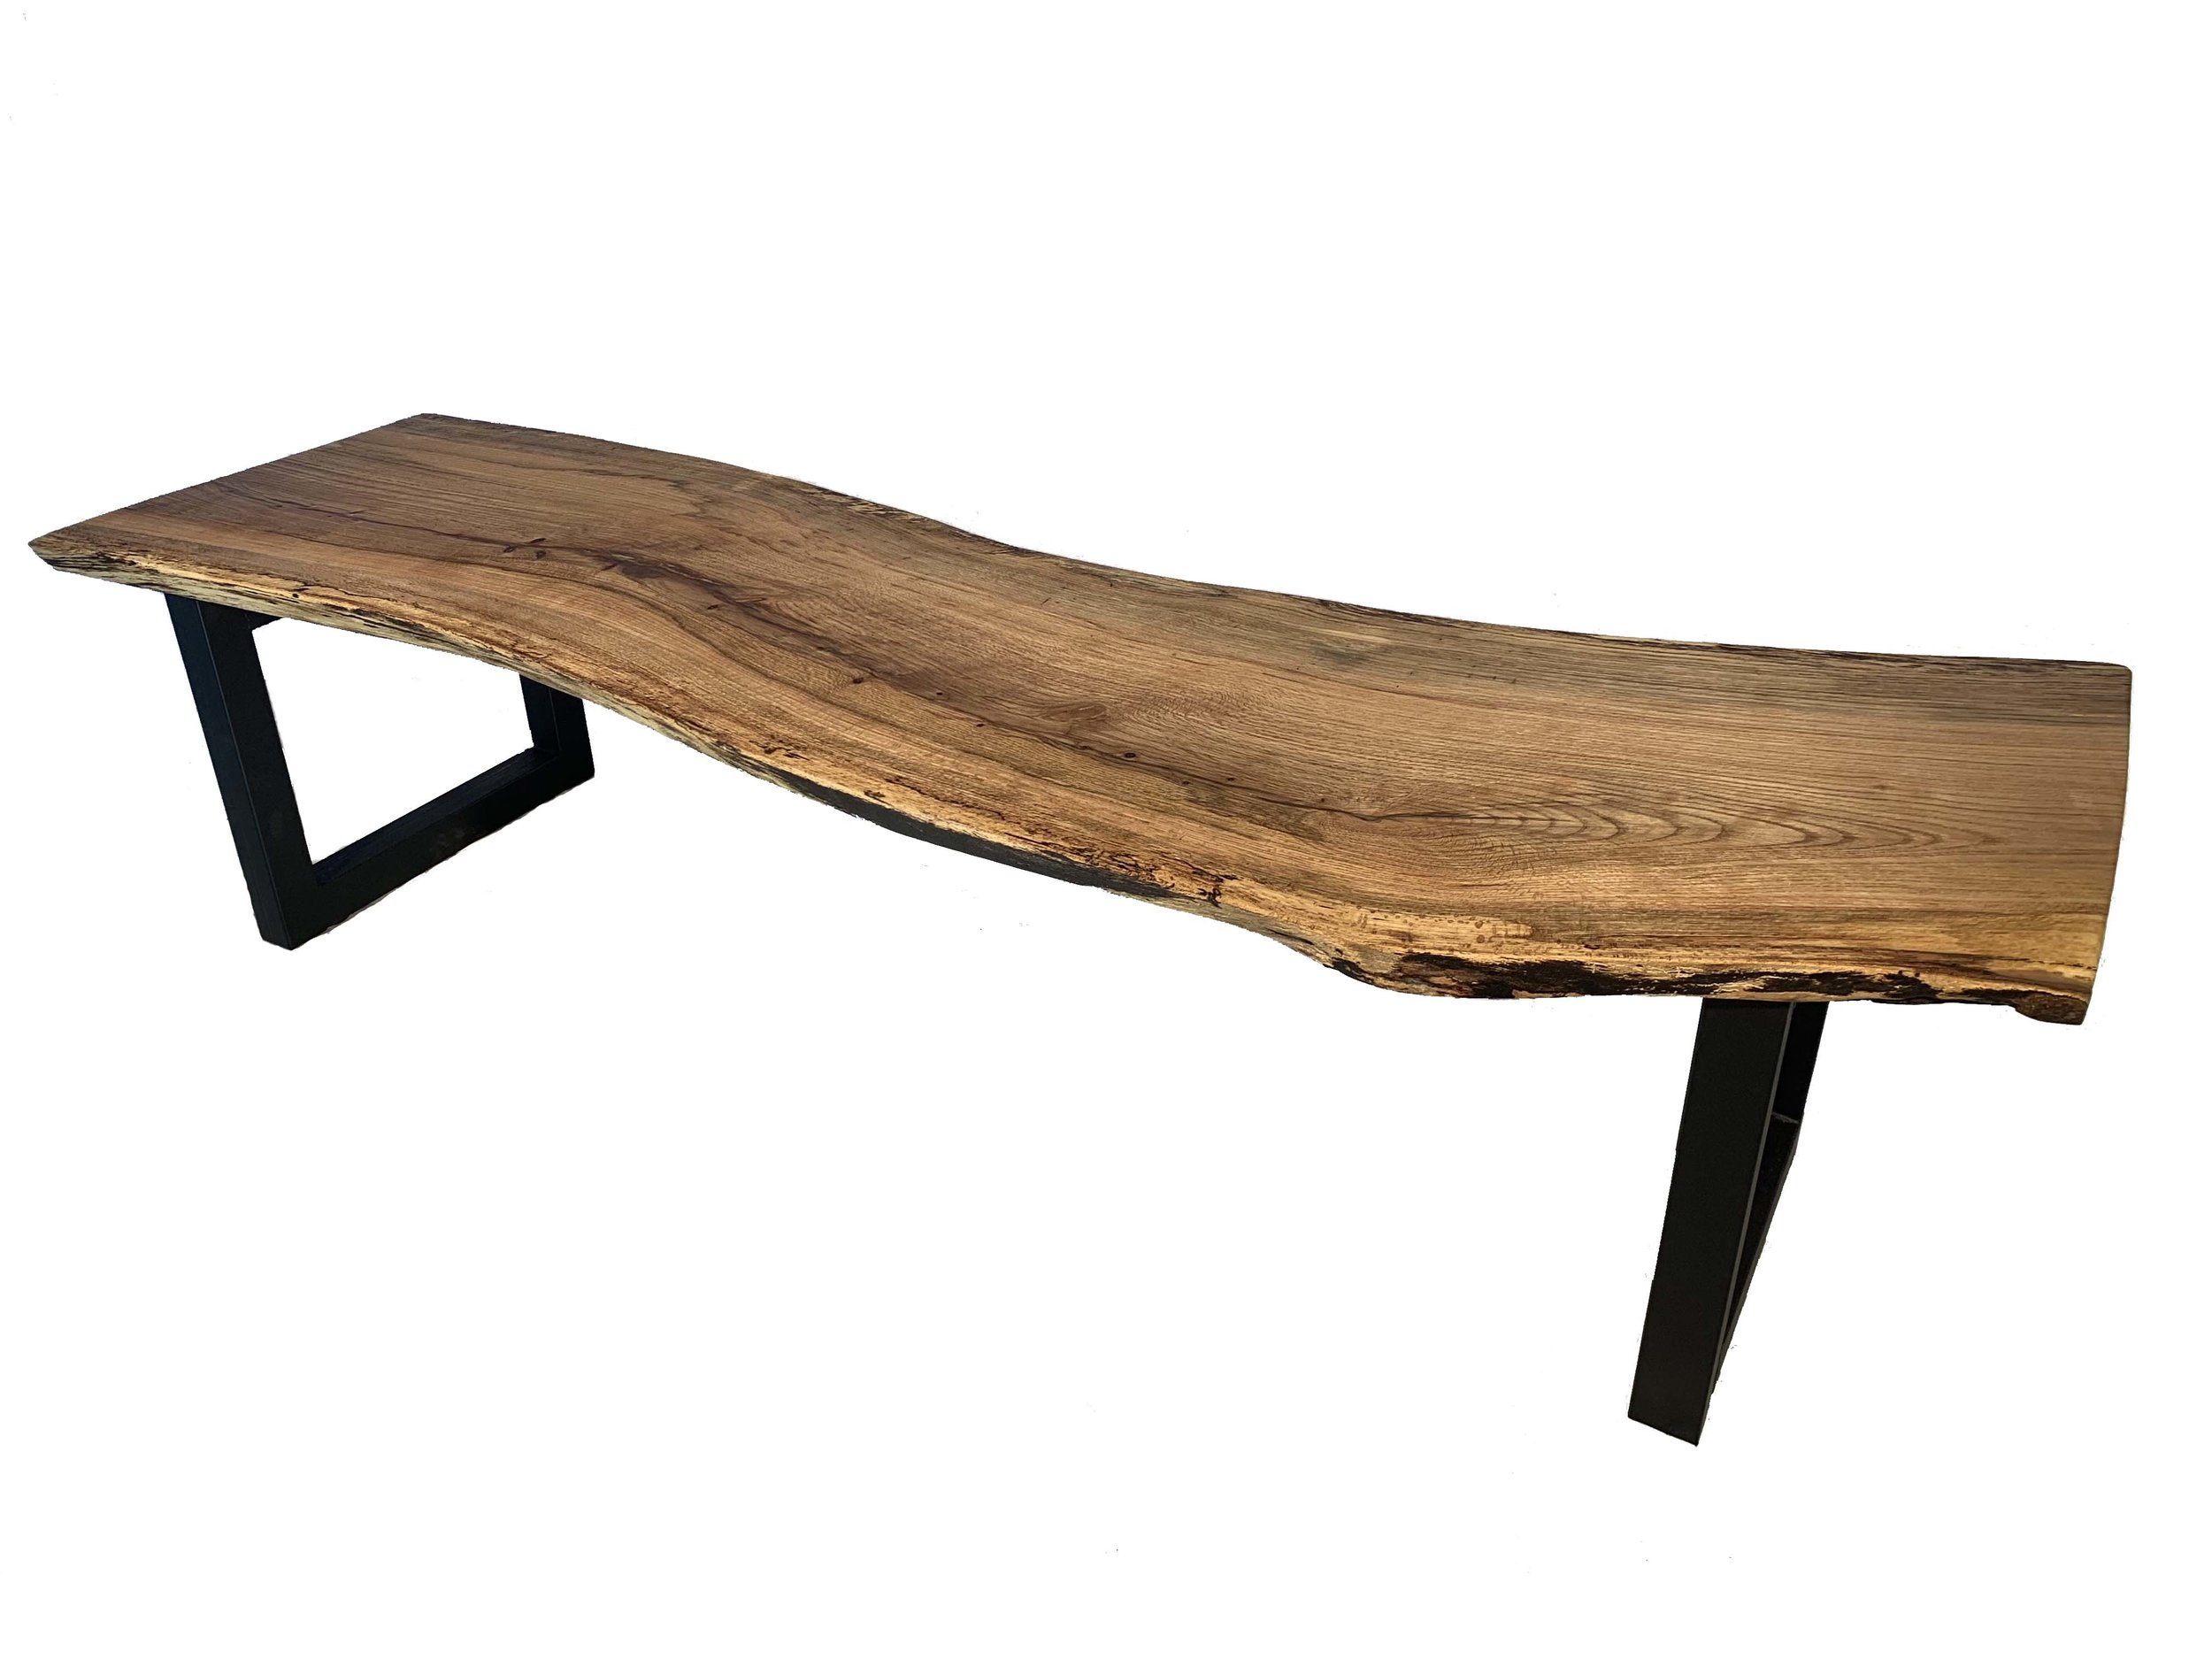 oak bench #2 side view.jpg